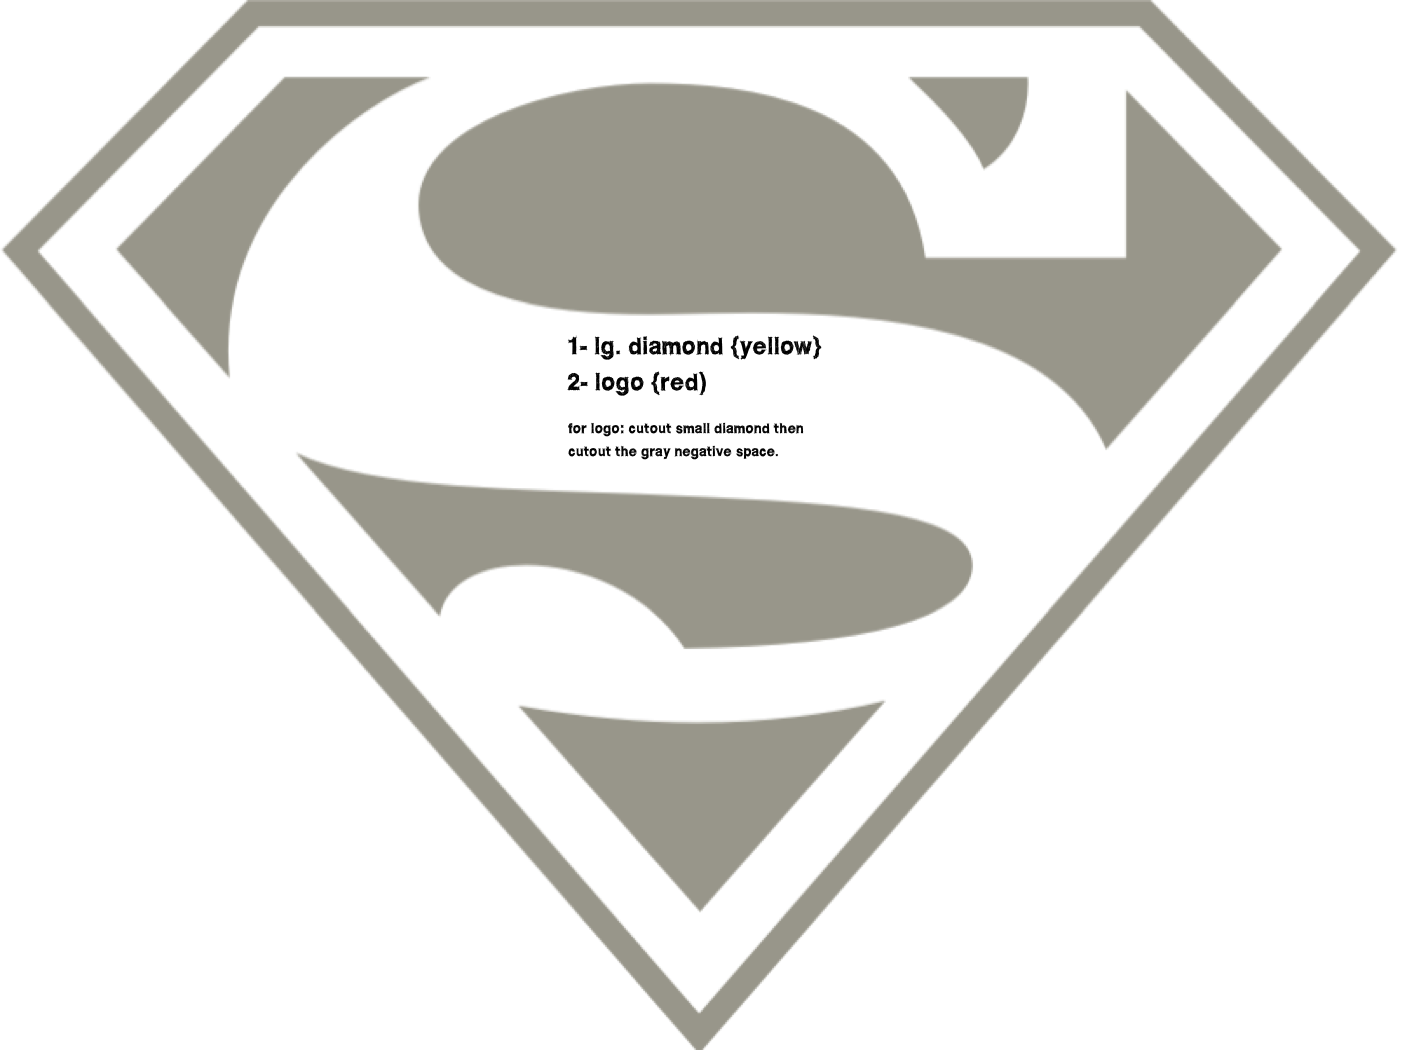 superman logo template for cake - the gallery for superhero logo template